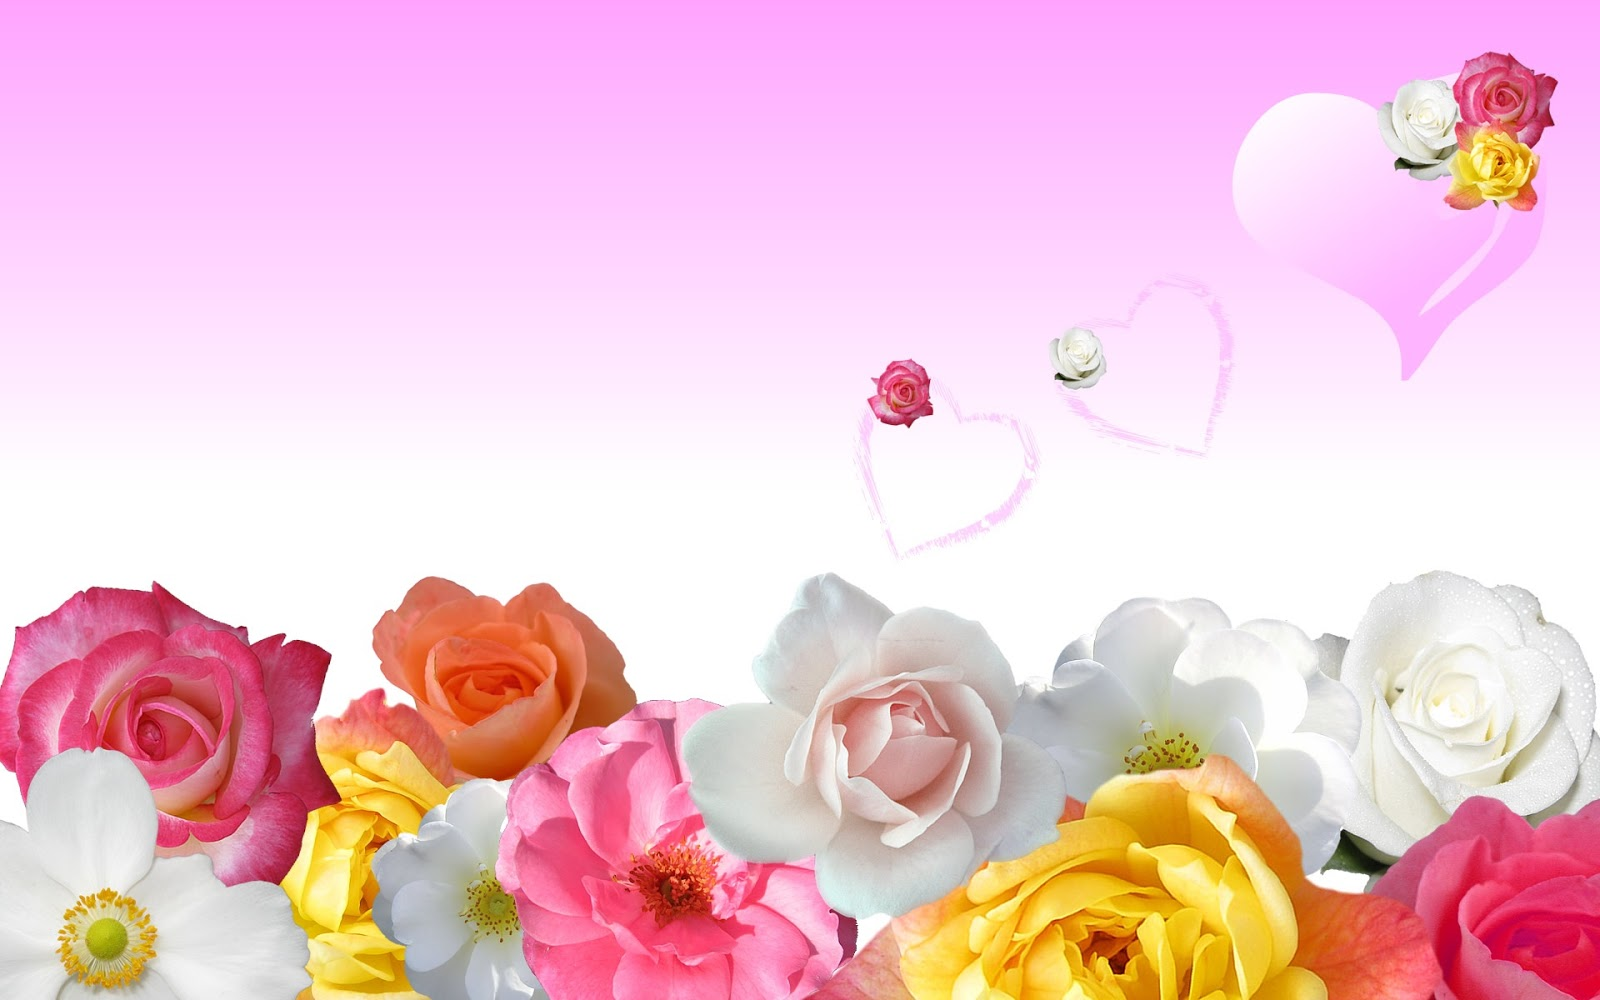 Roses Love Hearts 1920x1200 Wallpaper